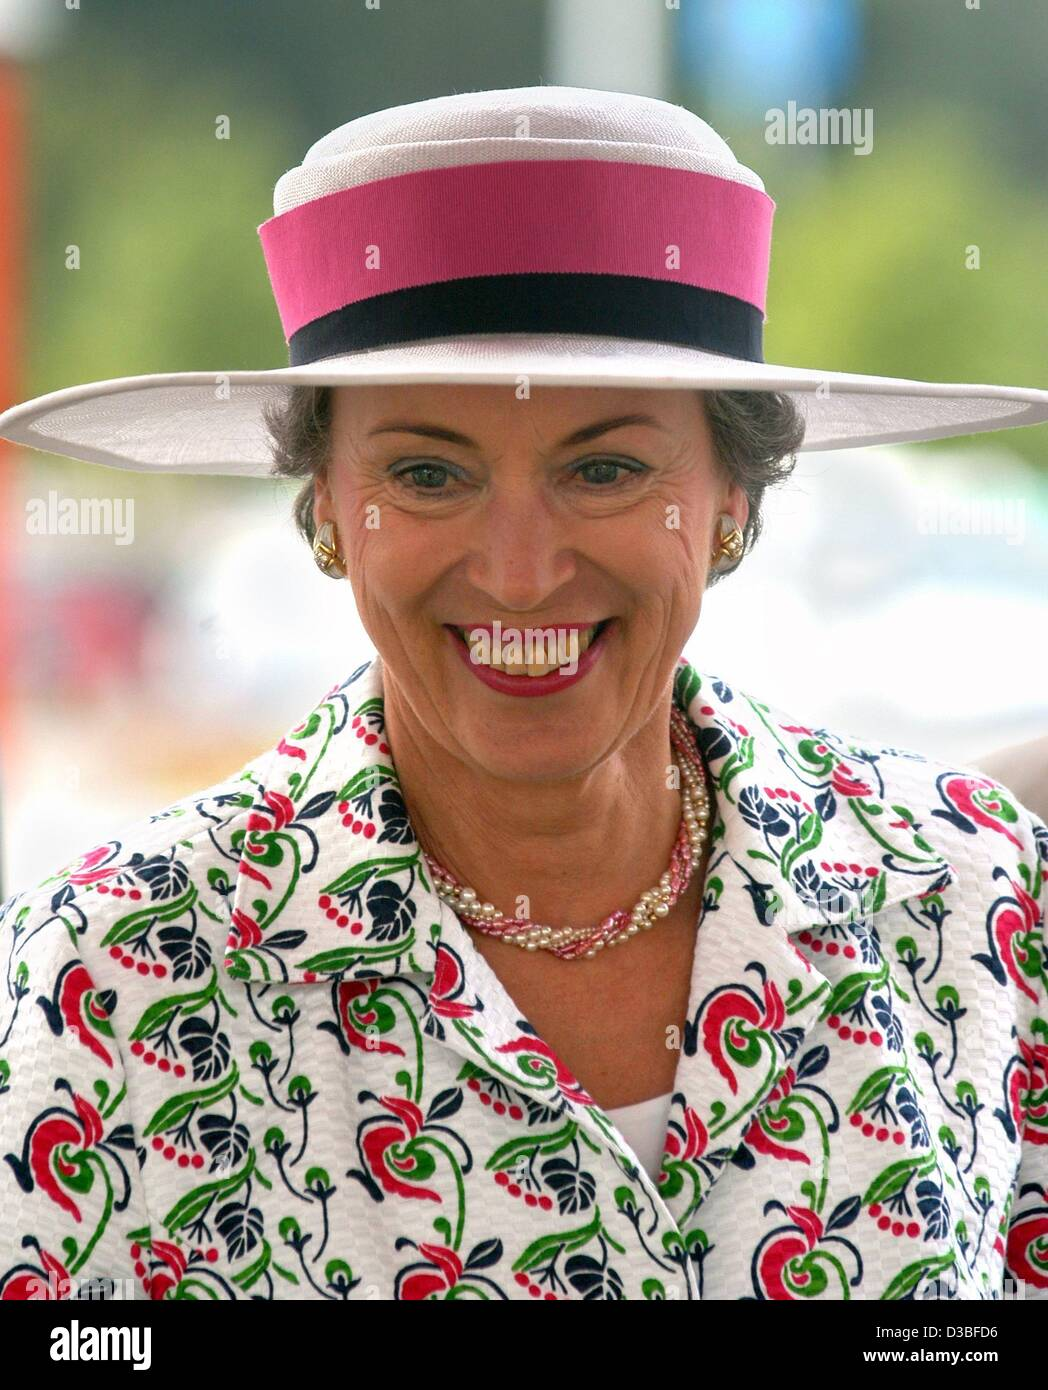 (dpa) - Danish princess Benedikte wears a hat and a flowery dress and smiles during her visits to the Legoland park - Stock Image